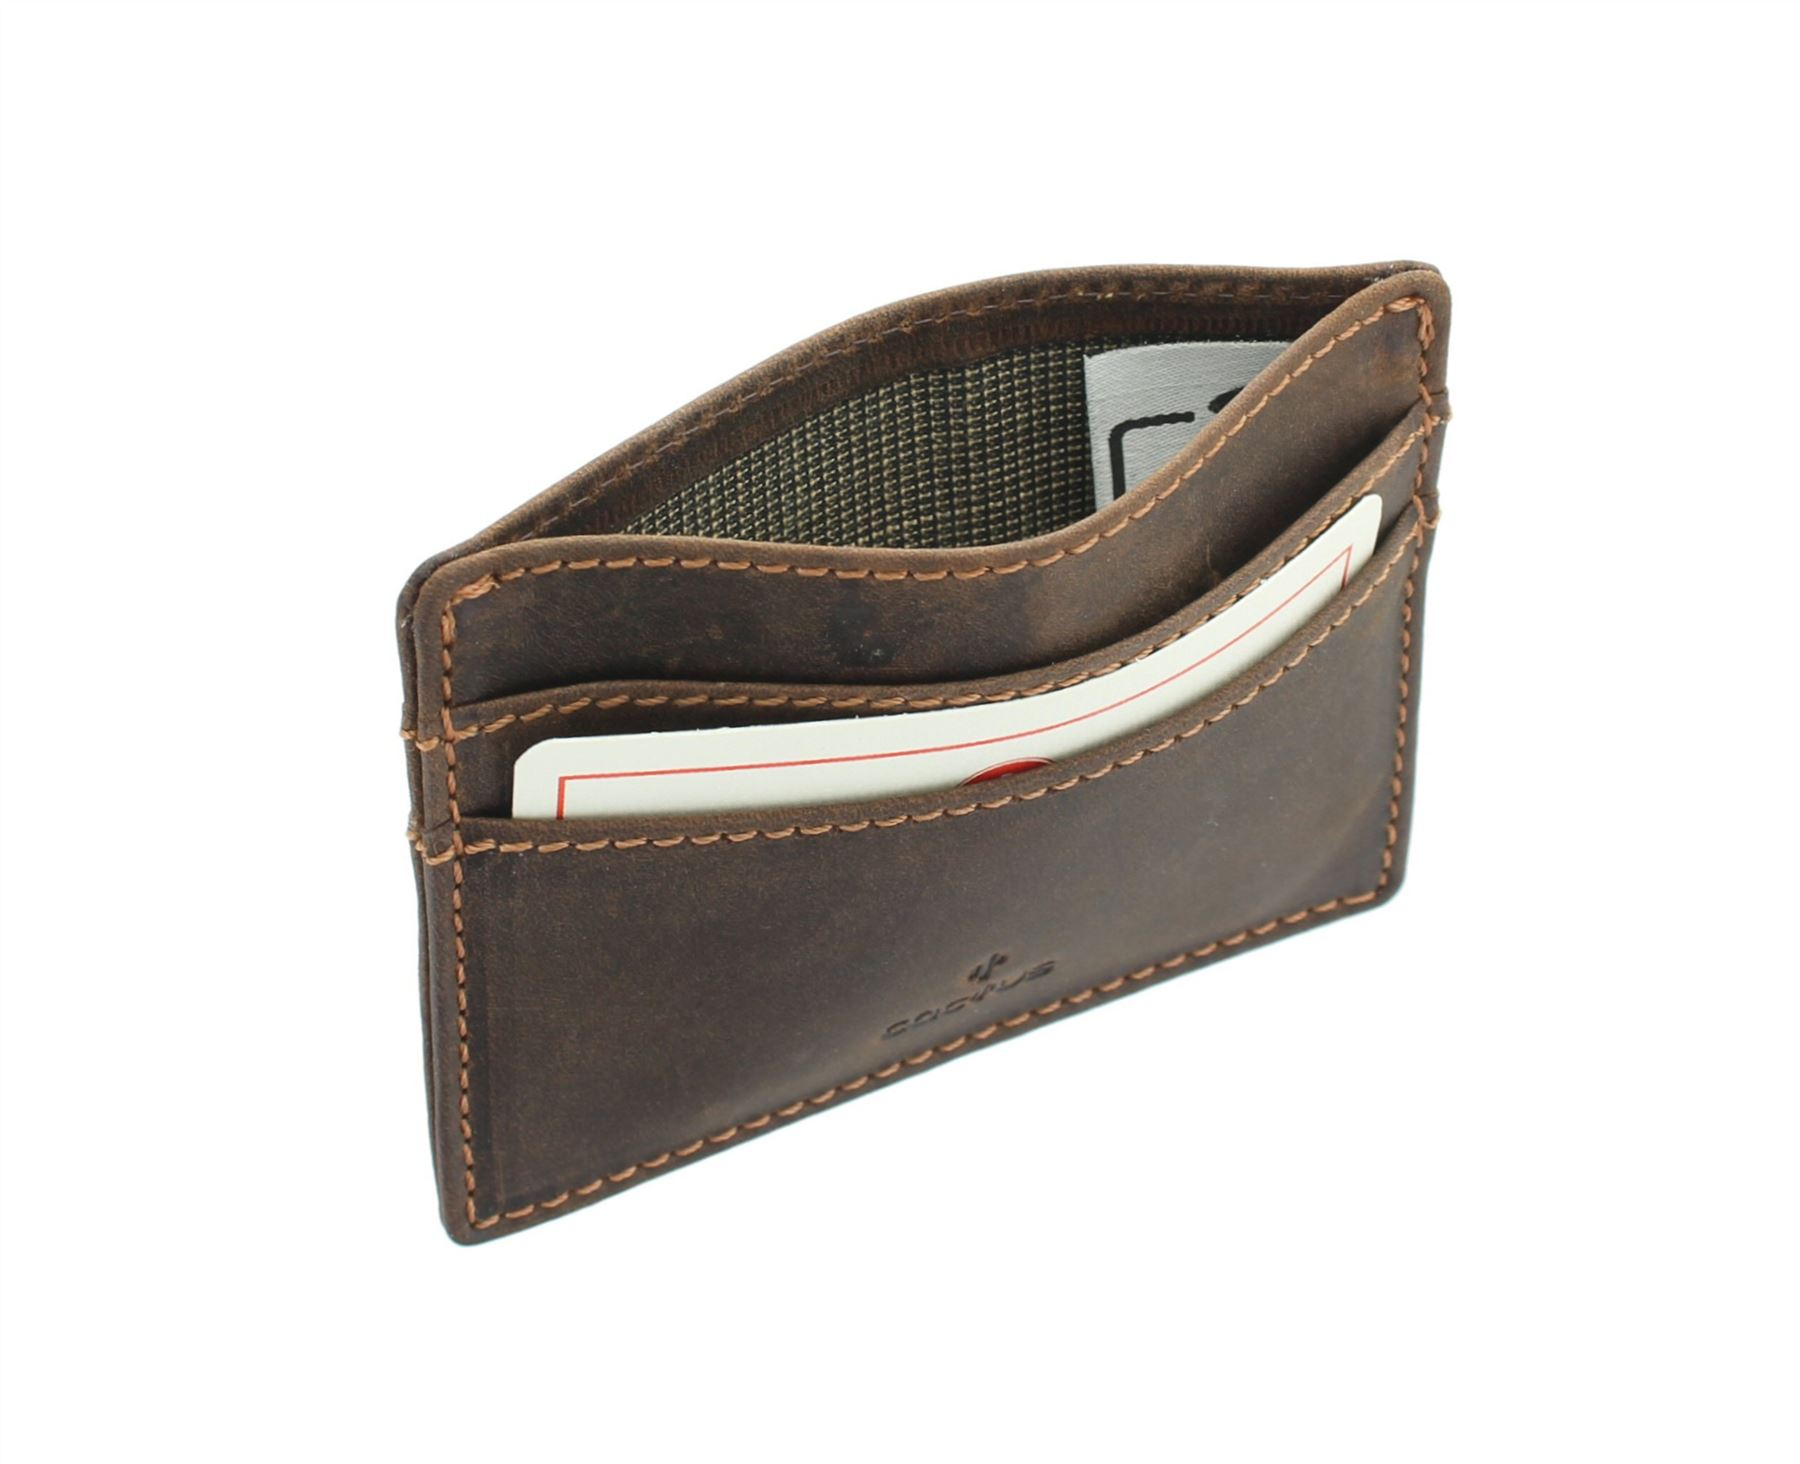 CACTUS Slim Oiled Leather Credit Card Holder With RFID Protection 626/_81